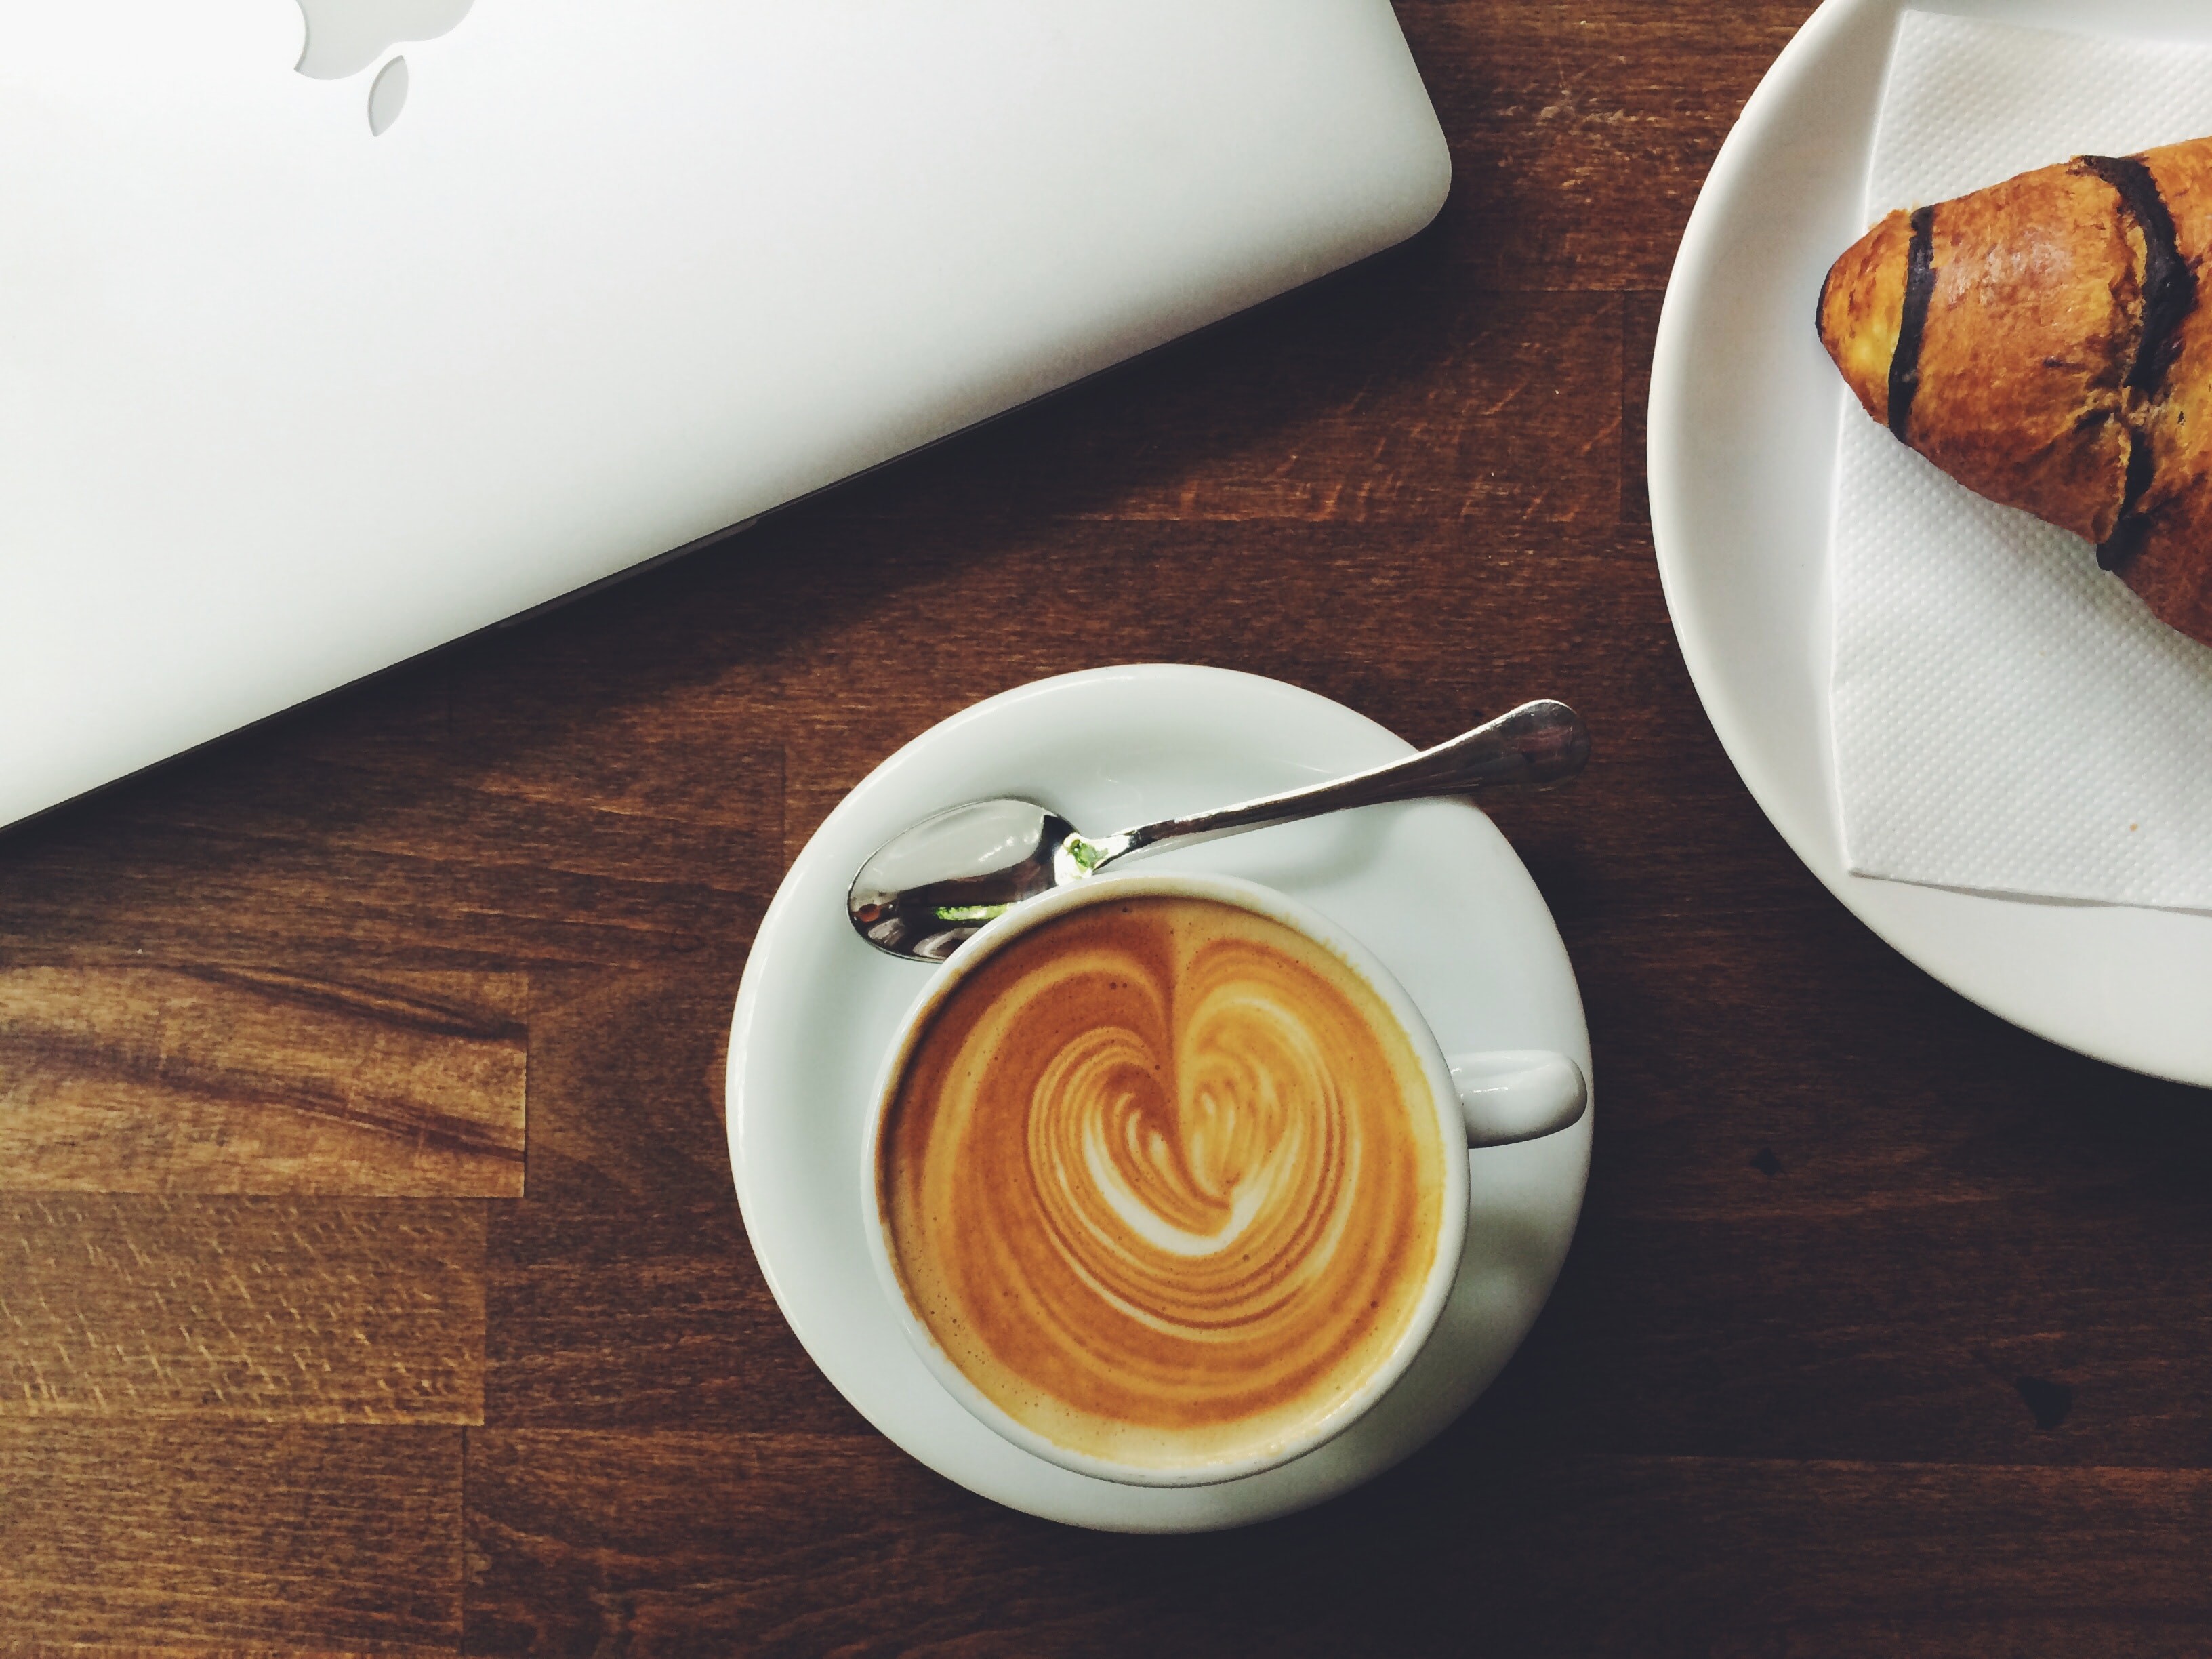 An overhead shot of a latte near a croissant and a MacBook